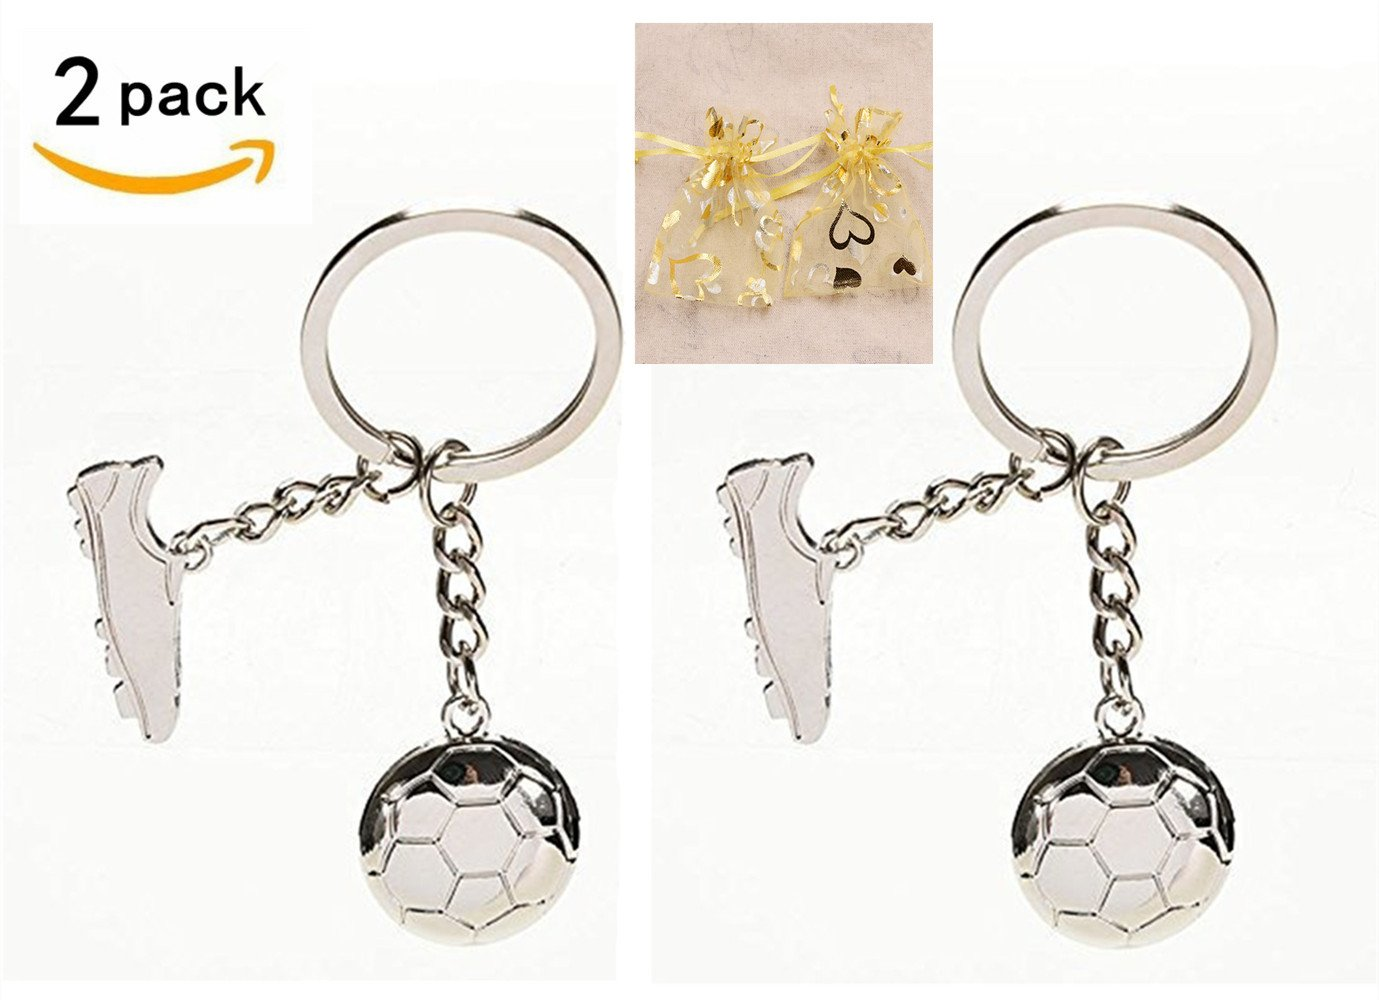 2 Pack Soccer Keychains - Soccer Ball and Shoe